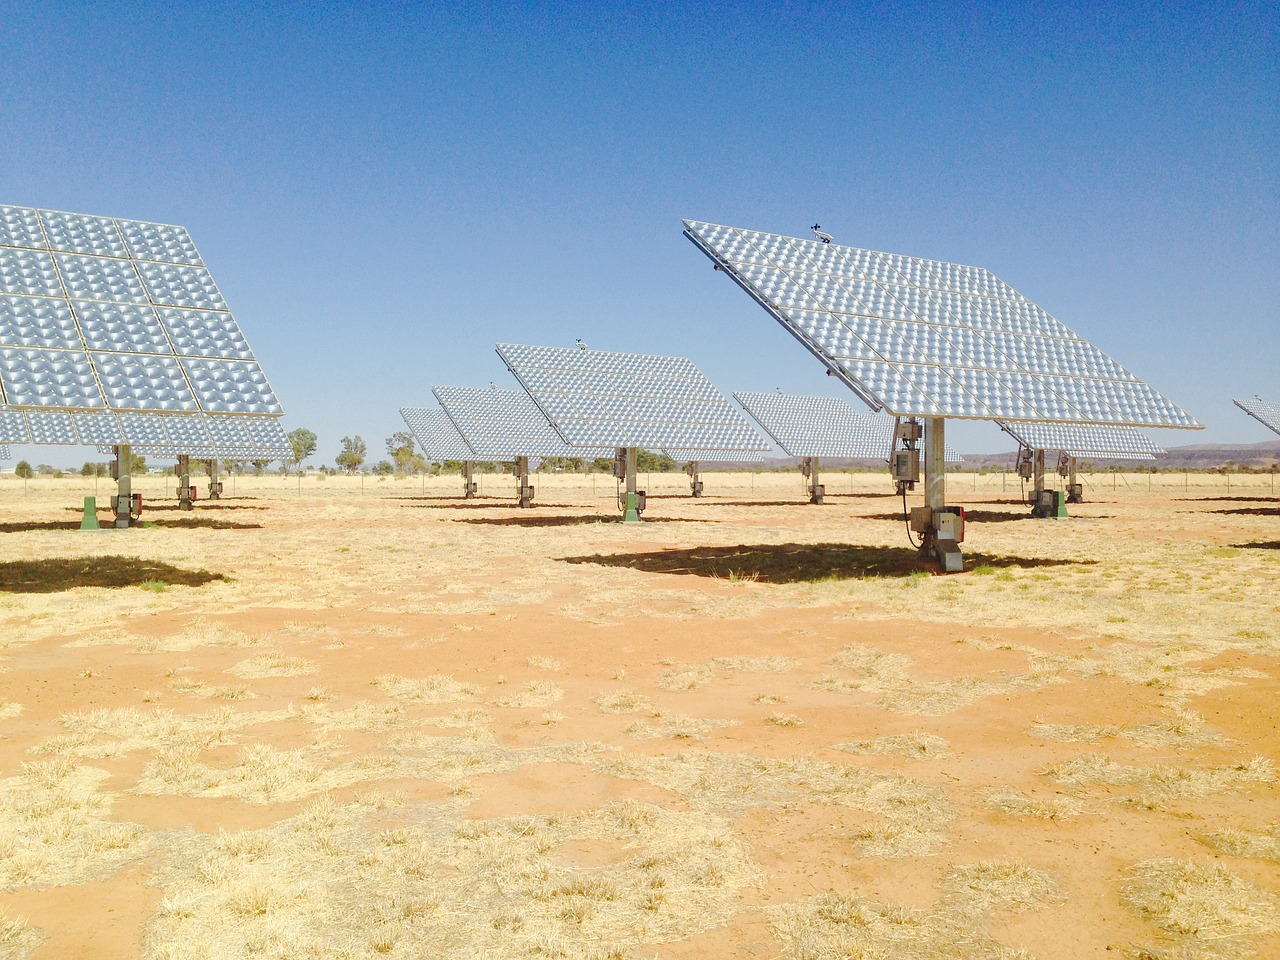 Middle East Nations Turn To Renewable Energy to Meet Growing Demand